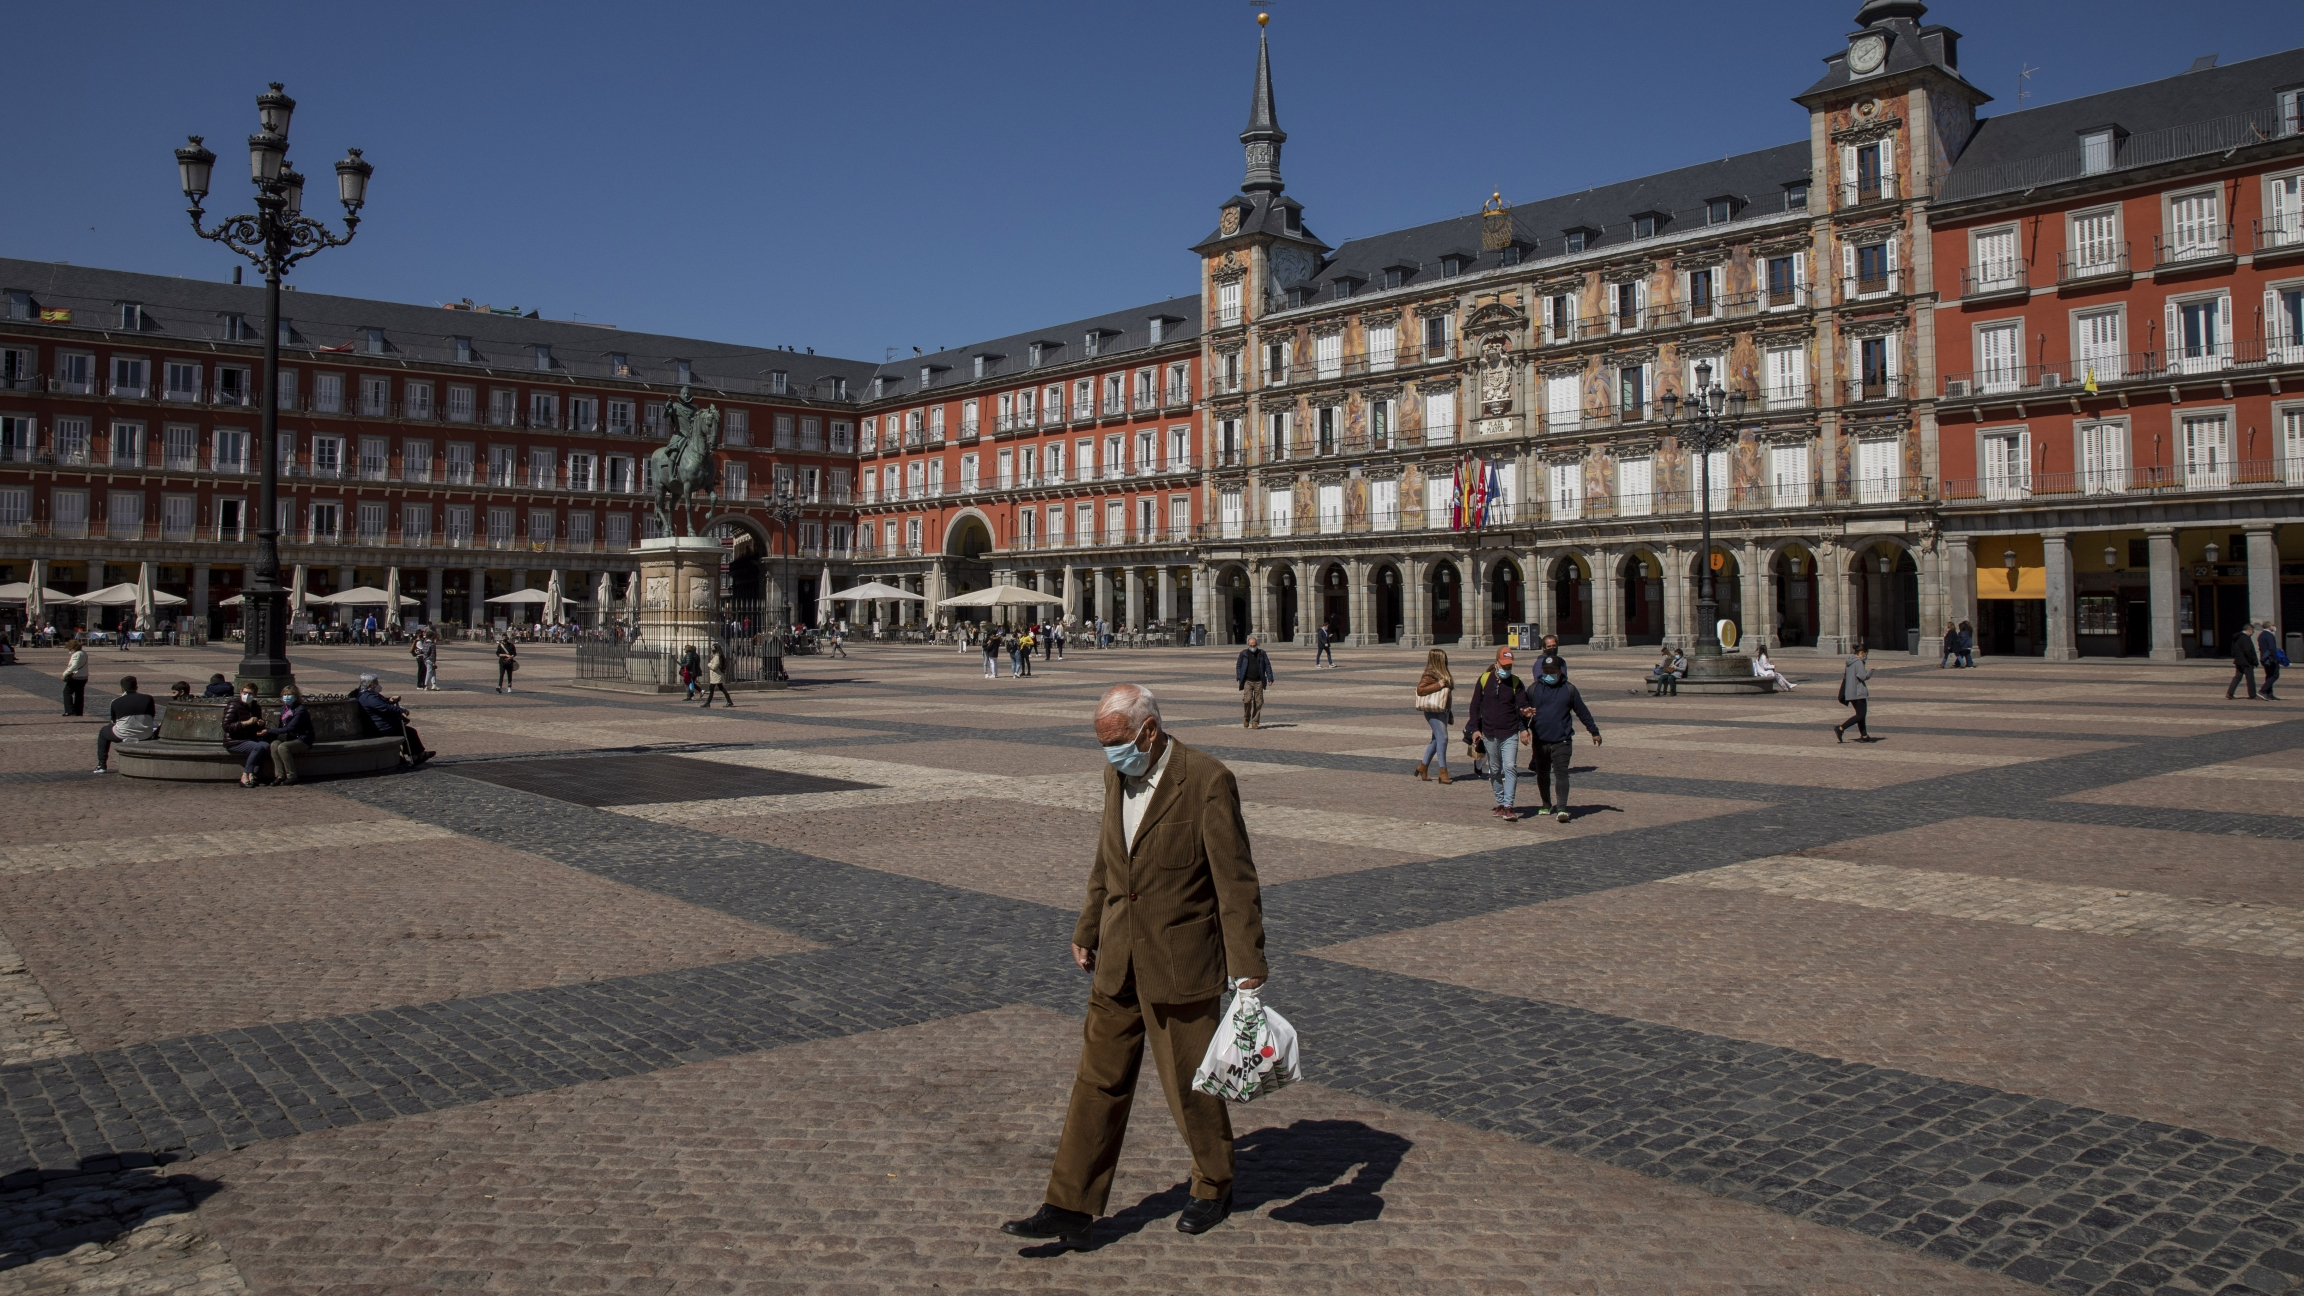 A man walks through a plaza during the day